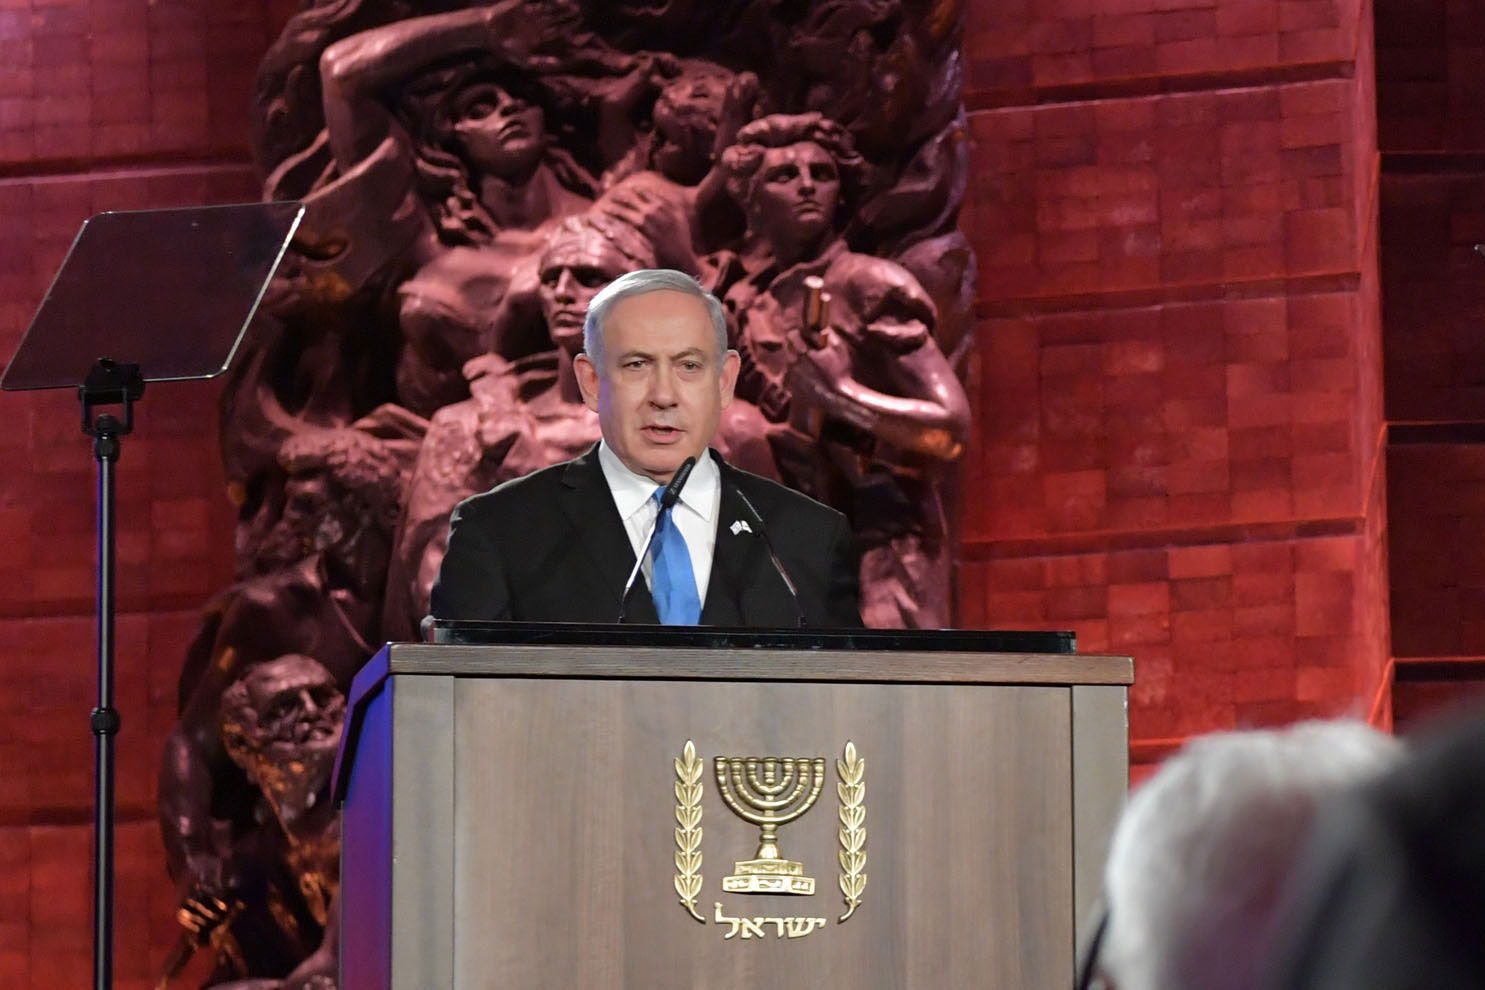 Israel's Prime Minister Benjamin Netanyahu addressed some 40 leaders at the event, marking 75 years since the liberation of Auschwitz-Birkenau